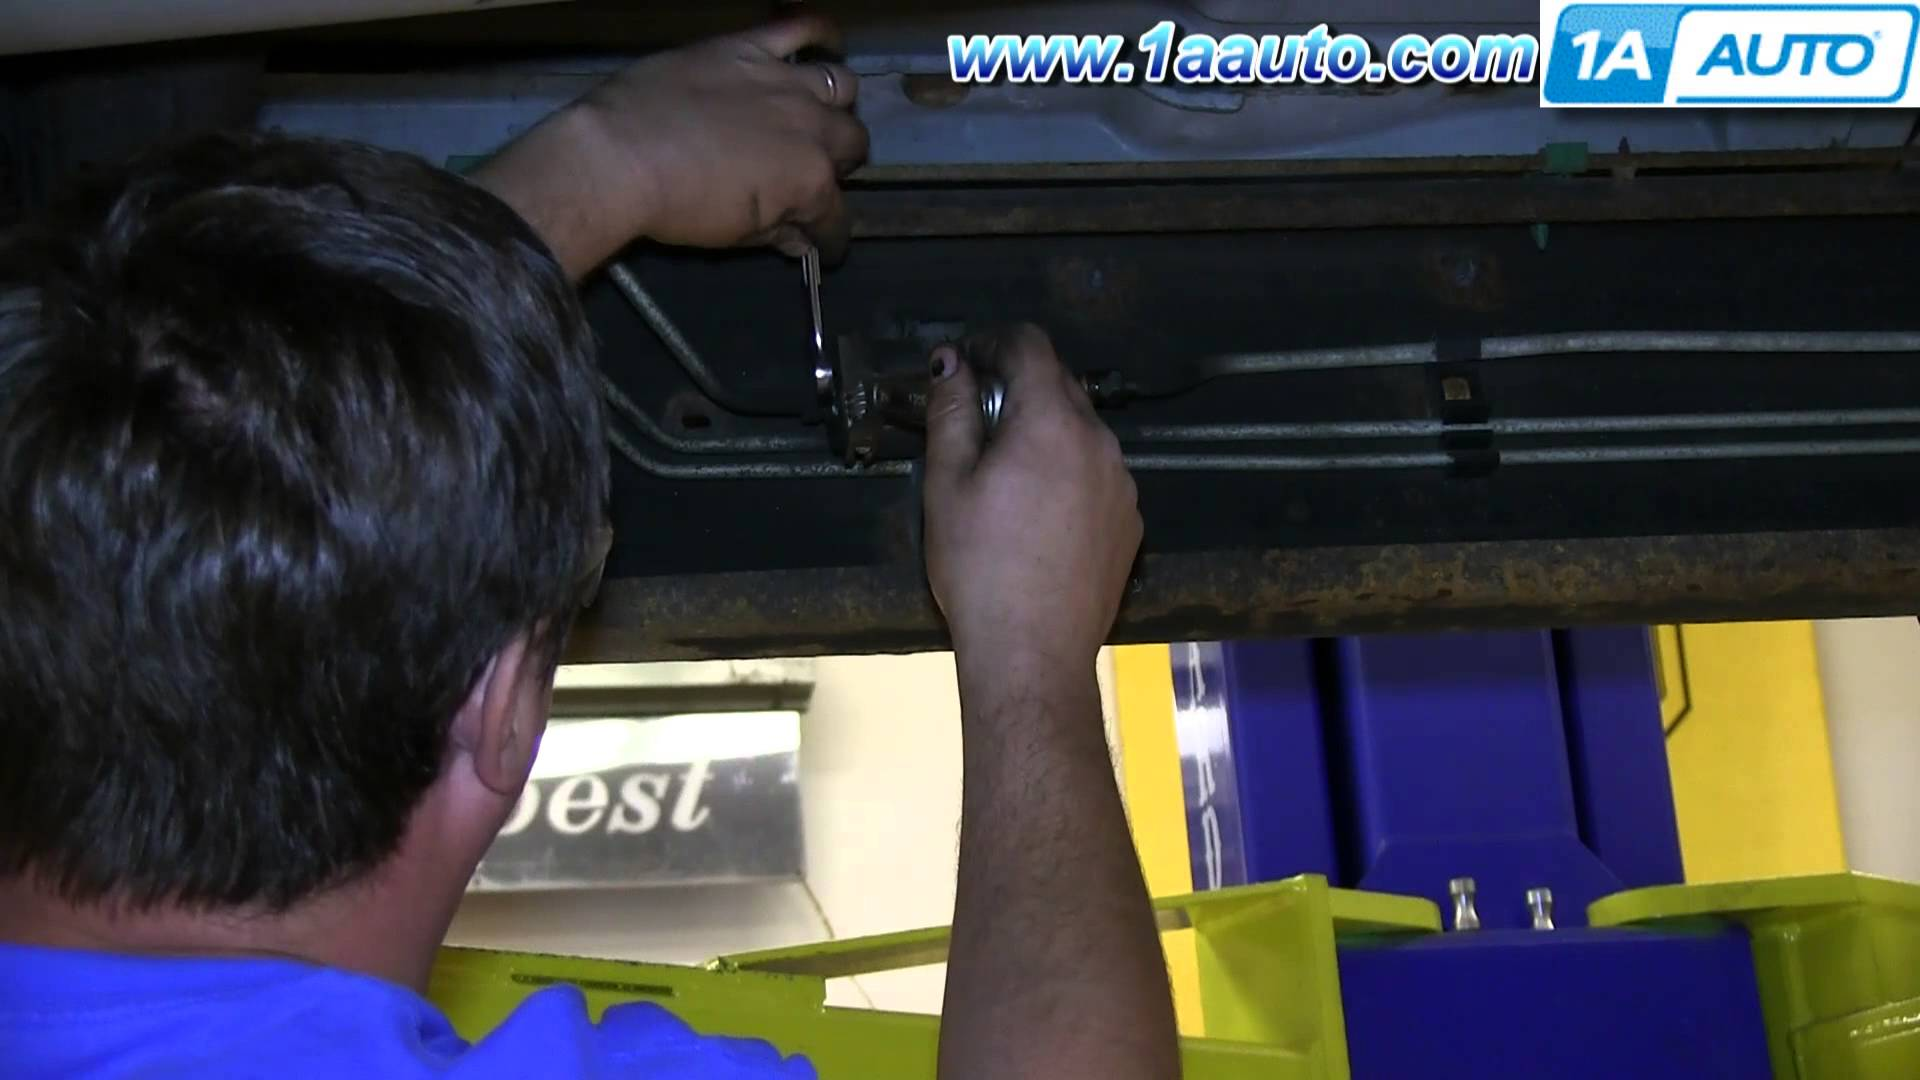 hight resolution of how to install replace fuel filter 1999 2006 gmc sierra chevy silverado more gm kansas city trailer repair by ustrailer com kansas city trailer repair